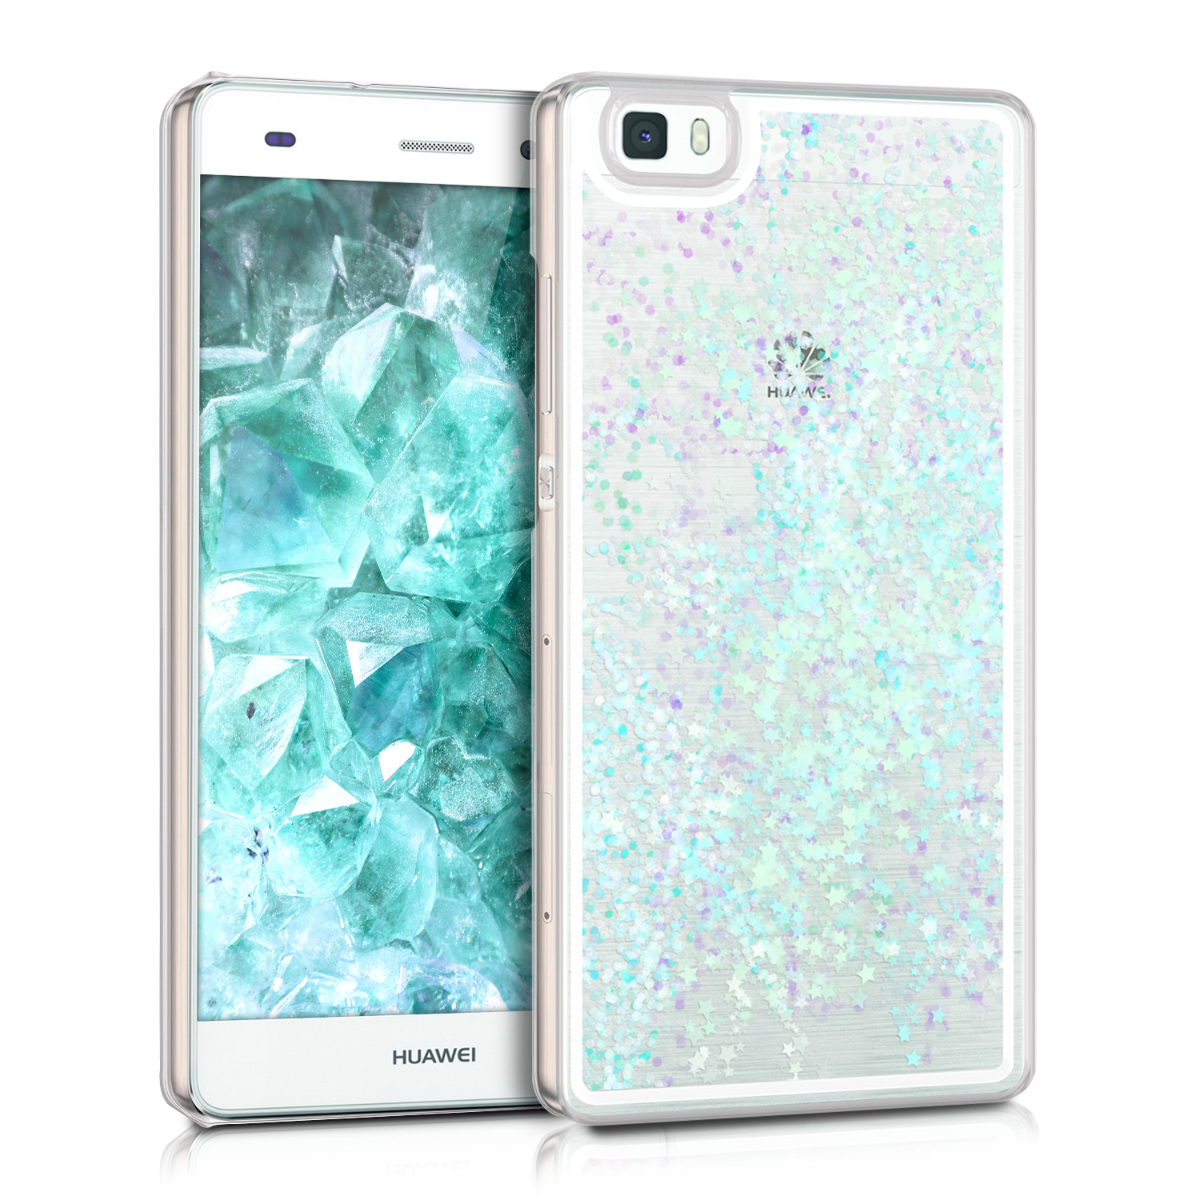 kwmobile hardcase cover for Huawei P8 Lite (2015) with liquid - hardcase backcover protective case water with Stars Snow Globe in Light Blue / Transparent